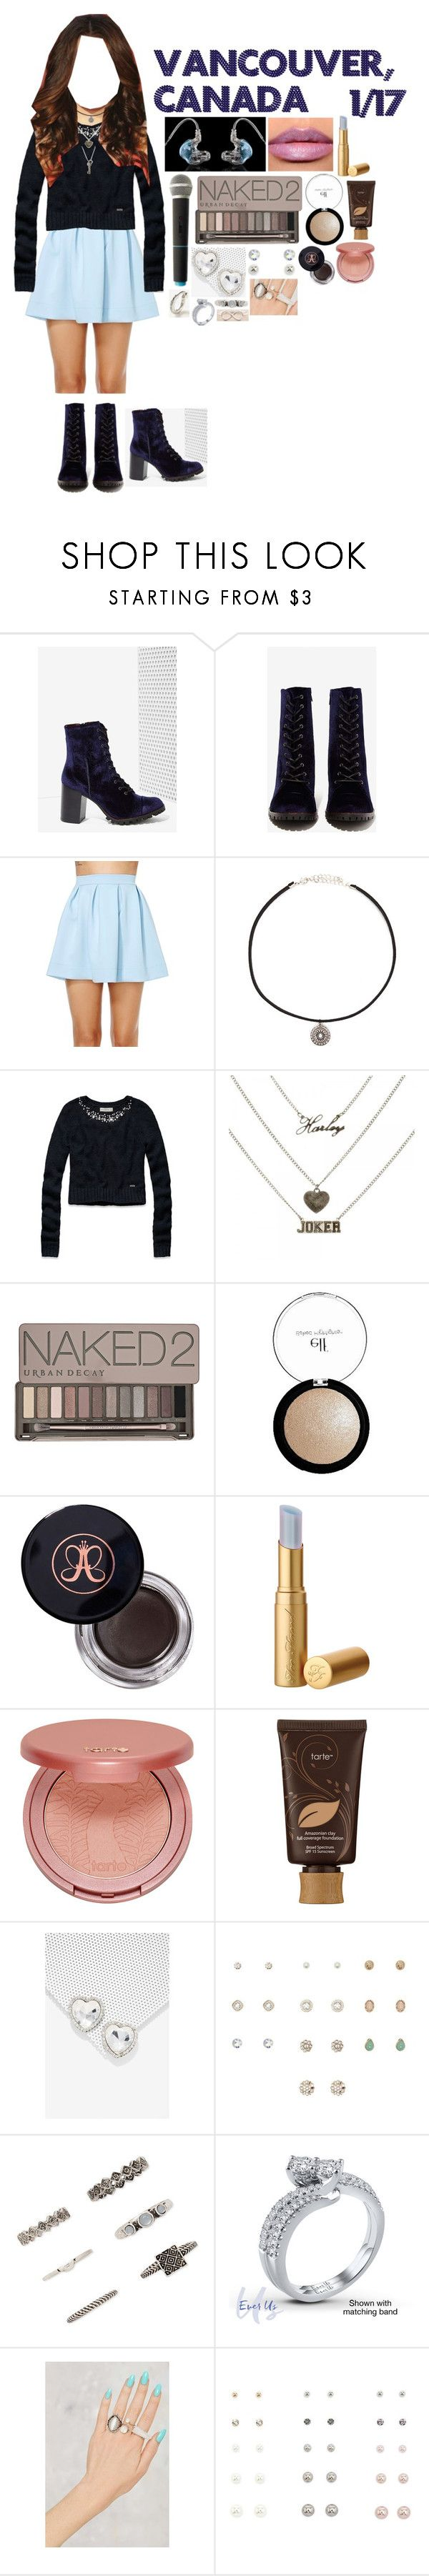 """Vancouver, Canada - 1.17.17"" by gfc-account ❤ liked on Polyvore featuring Report, Honey Punch, Forever 21, Abercrombie & Fitch, Ultimate, Urban Decay, e.l.f., Anastasia Beverly Hills, tarte and Adina Reyter"